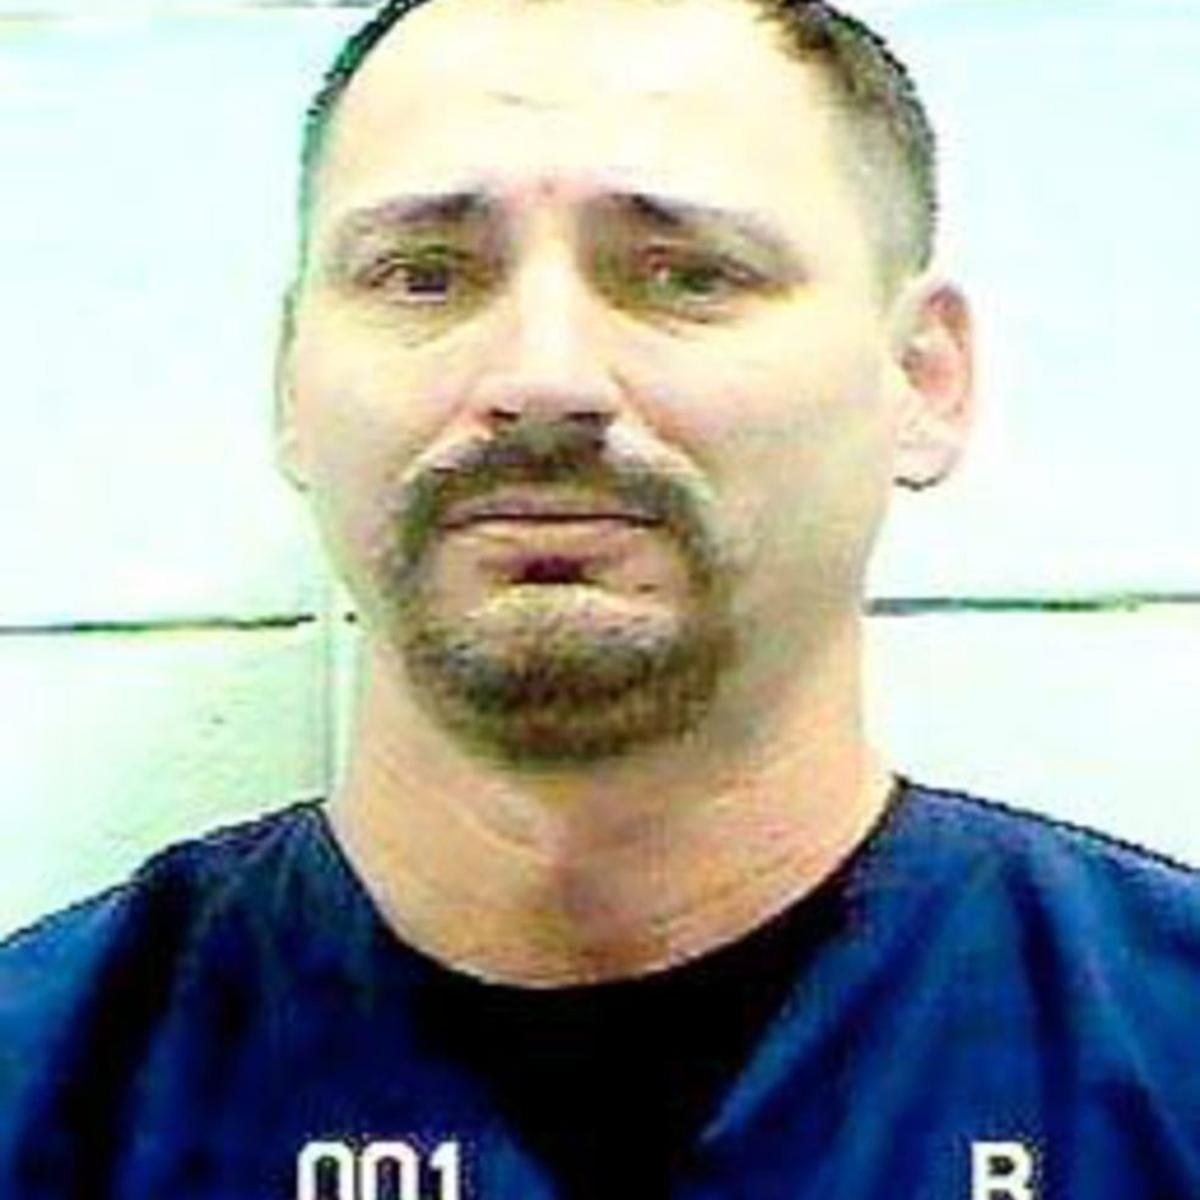 Clarke County man arrested in sex sting, released, now faces